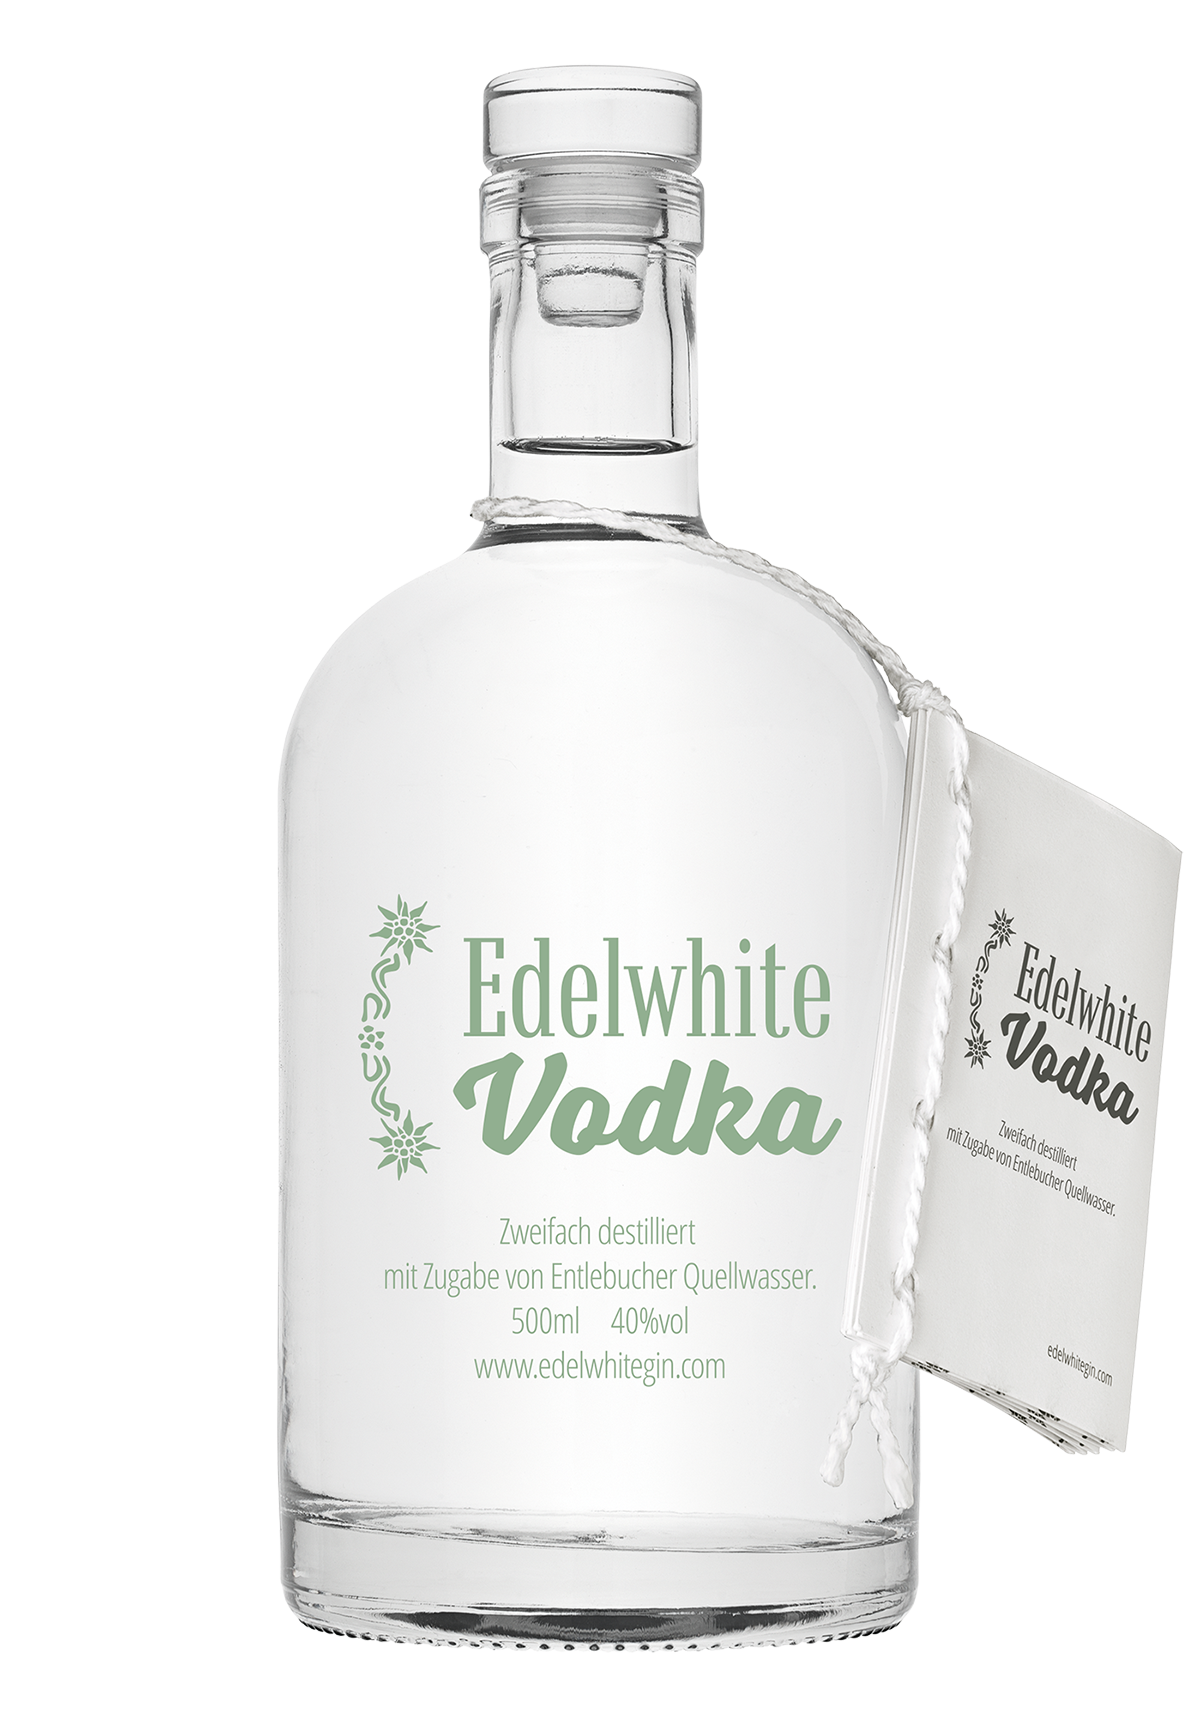 Vodka Edelwhite 40% 500ml